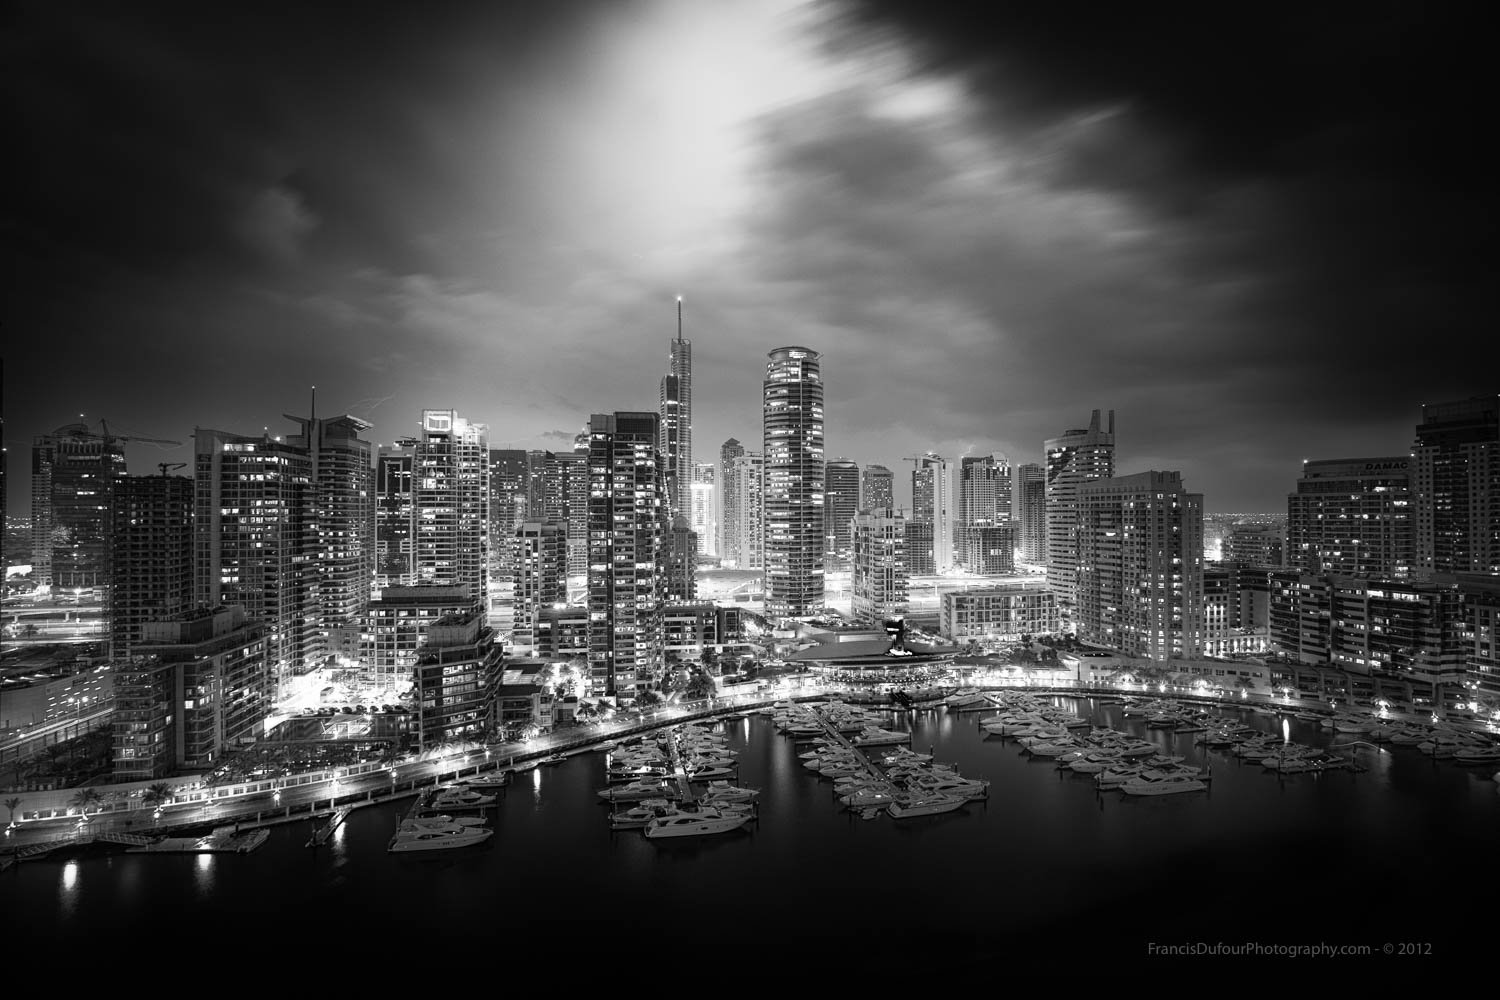 """2017 International Monovisions Awards in London - Winning Entry - Honorable Mention -""""Stormy night in Dubai Marina""""."""